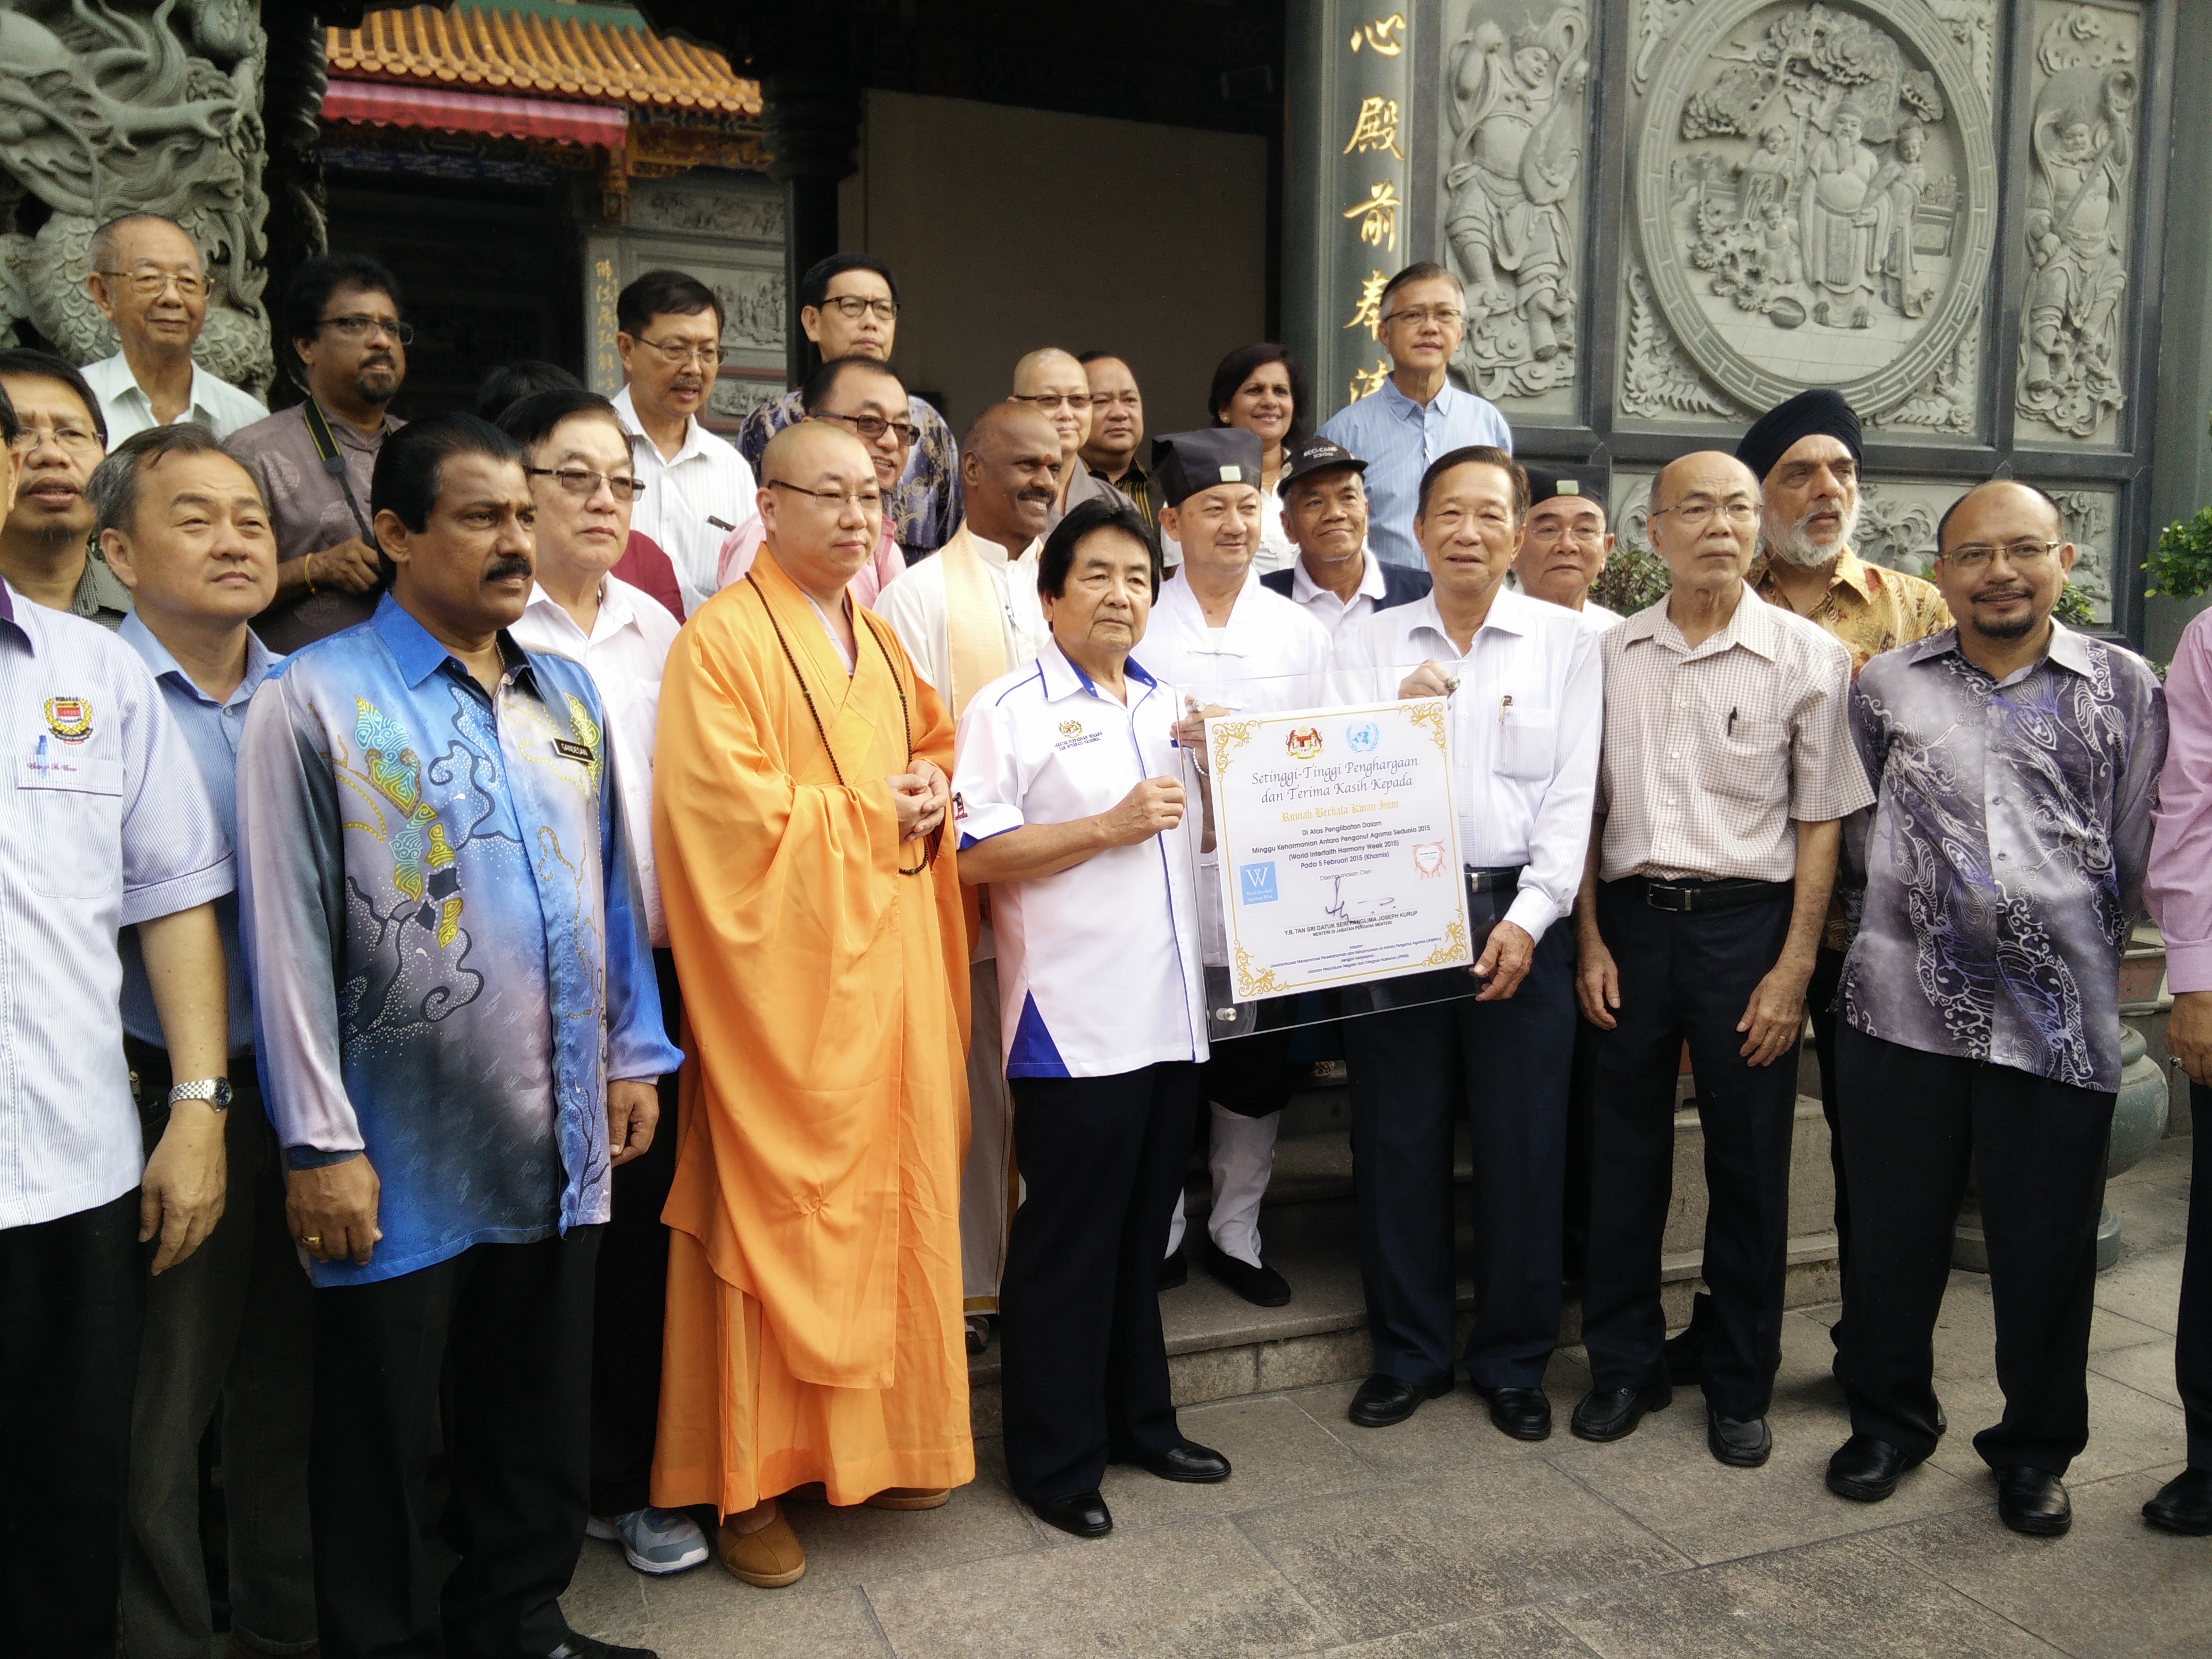 Honorable Minister Tan Sri Joseph Kurup with JKMPKA delegation at Buddhist temple for WIHW 2015 activities in Klang.jpg